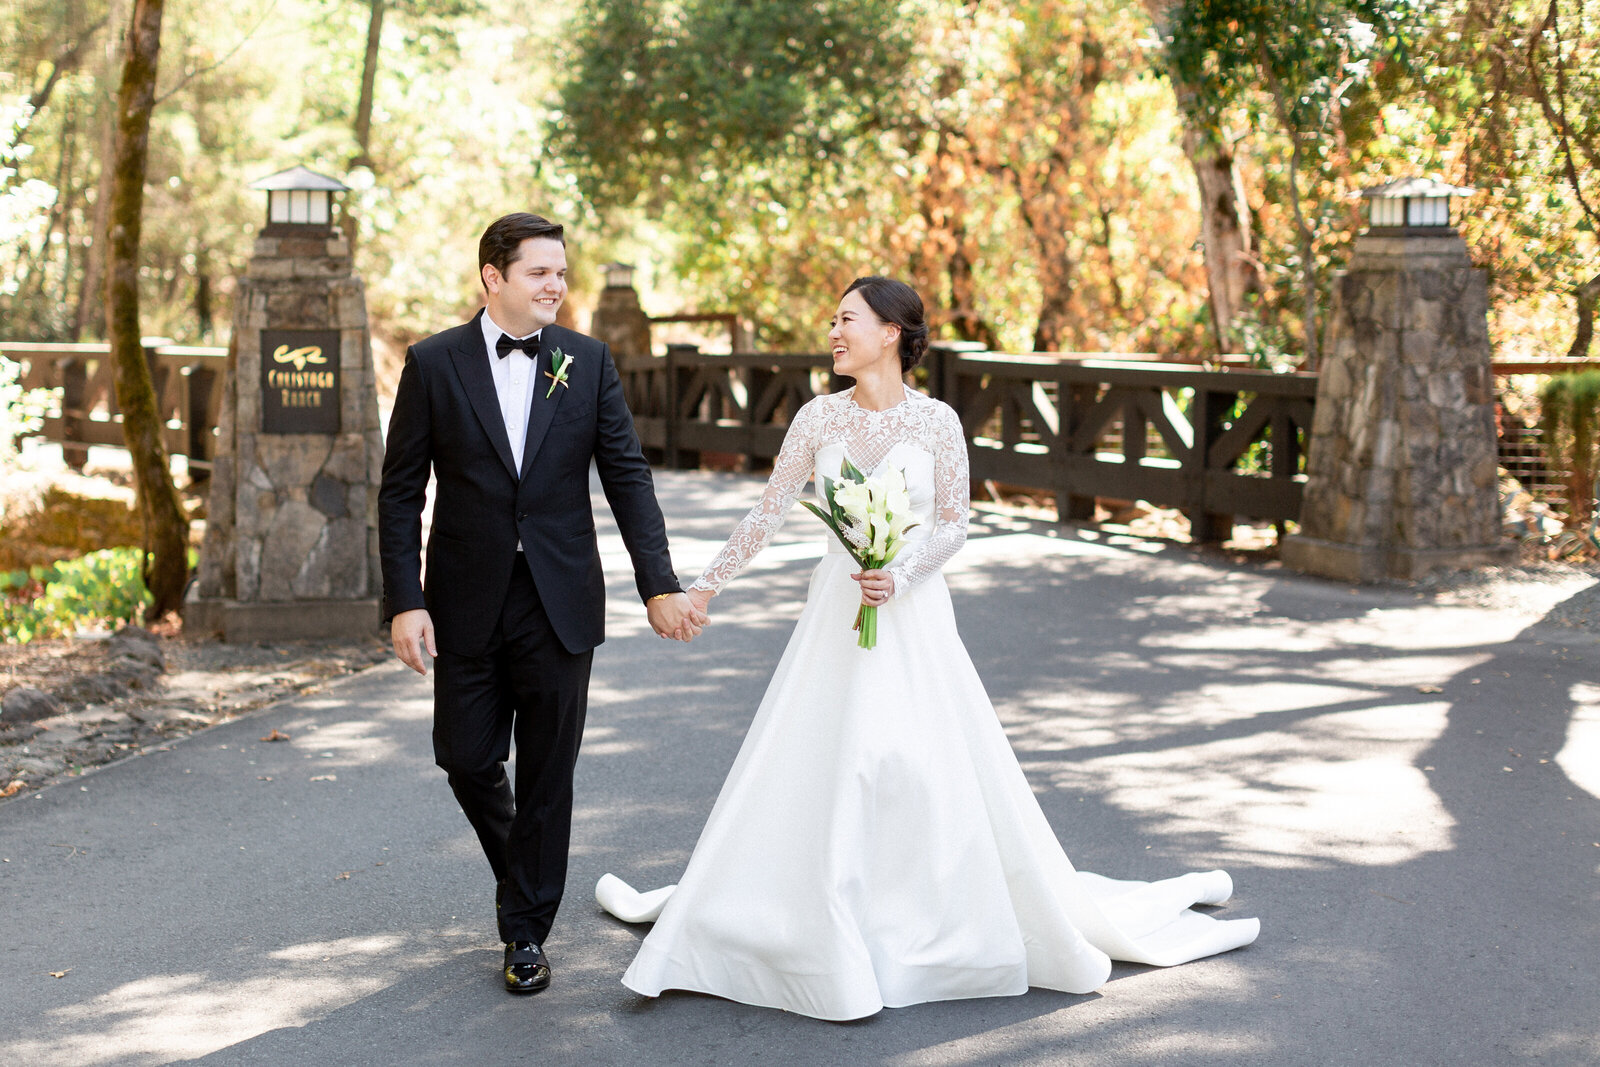 larissa-cleveland-elope-eleopement-intimate-wedding-photographer-san-francisco-napa-carmel-001